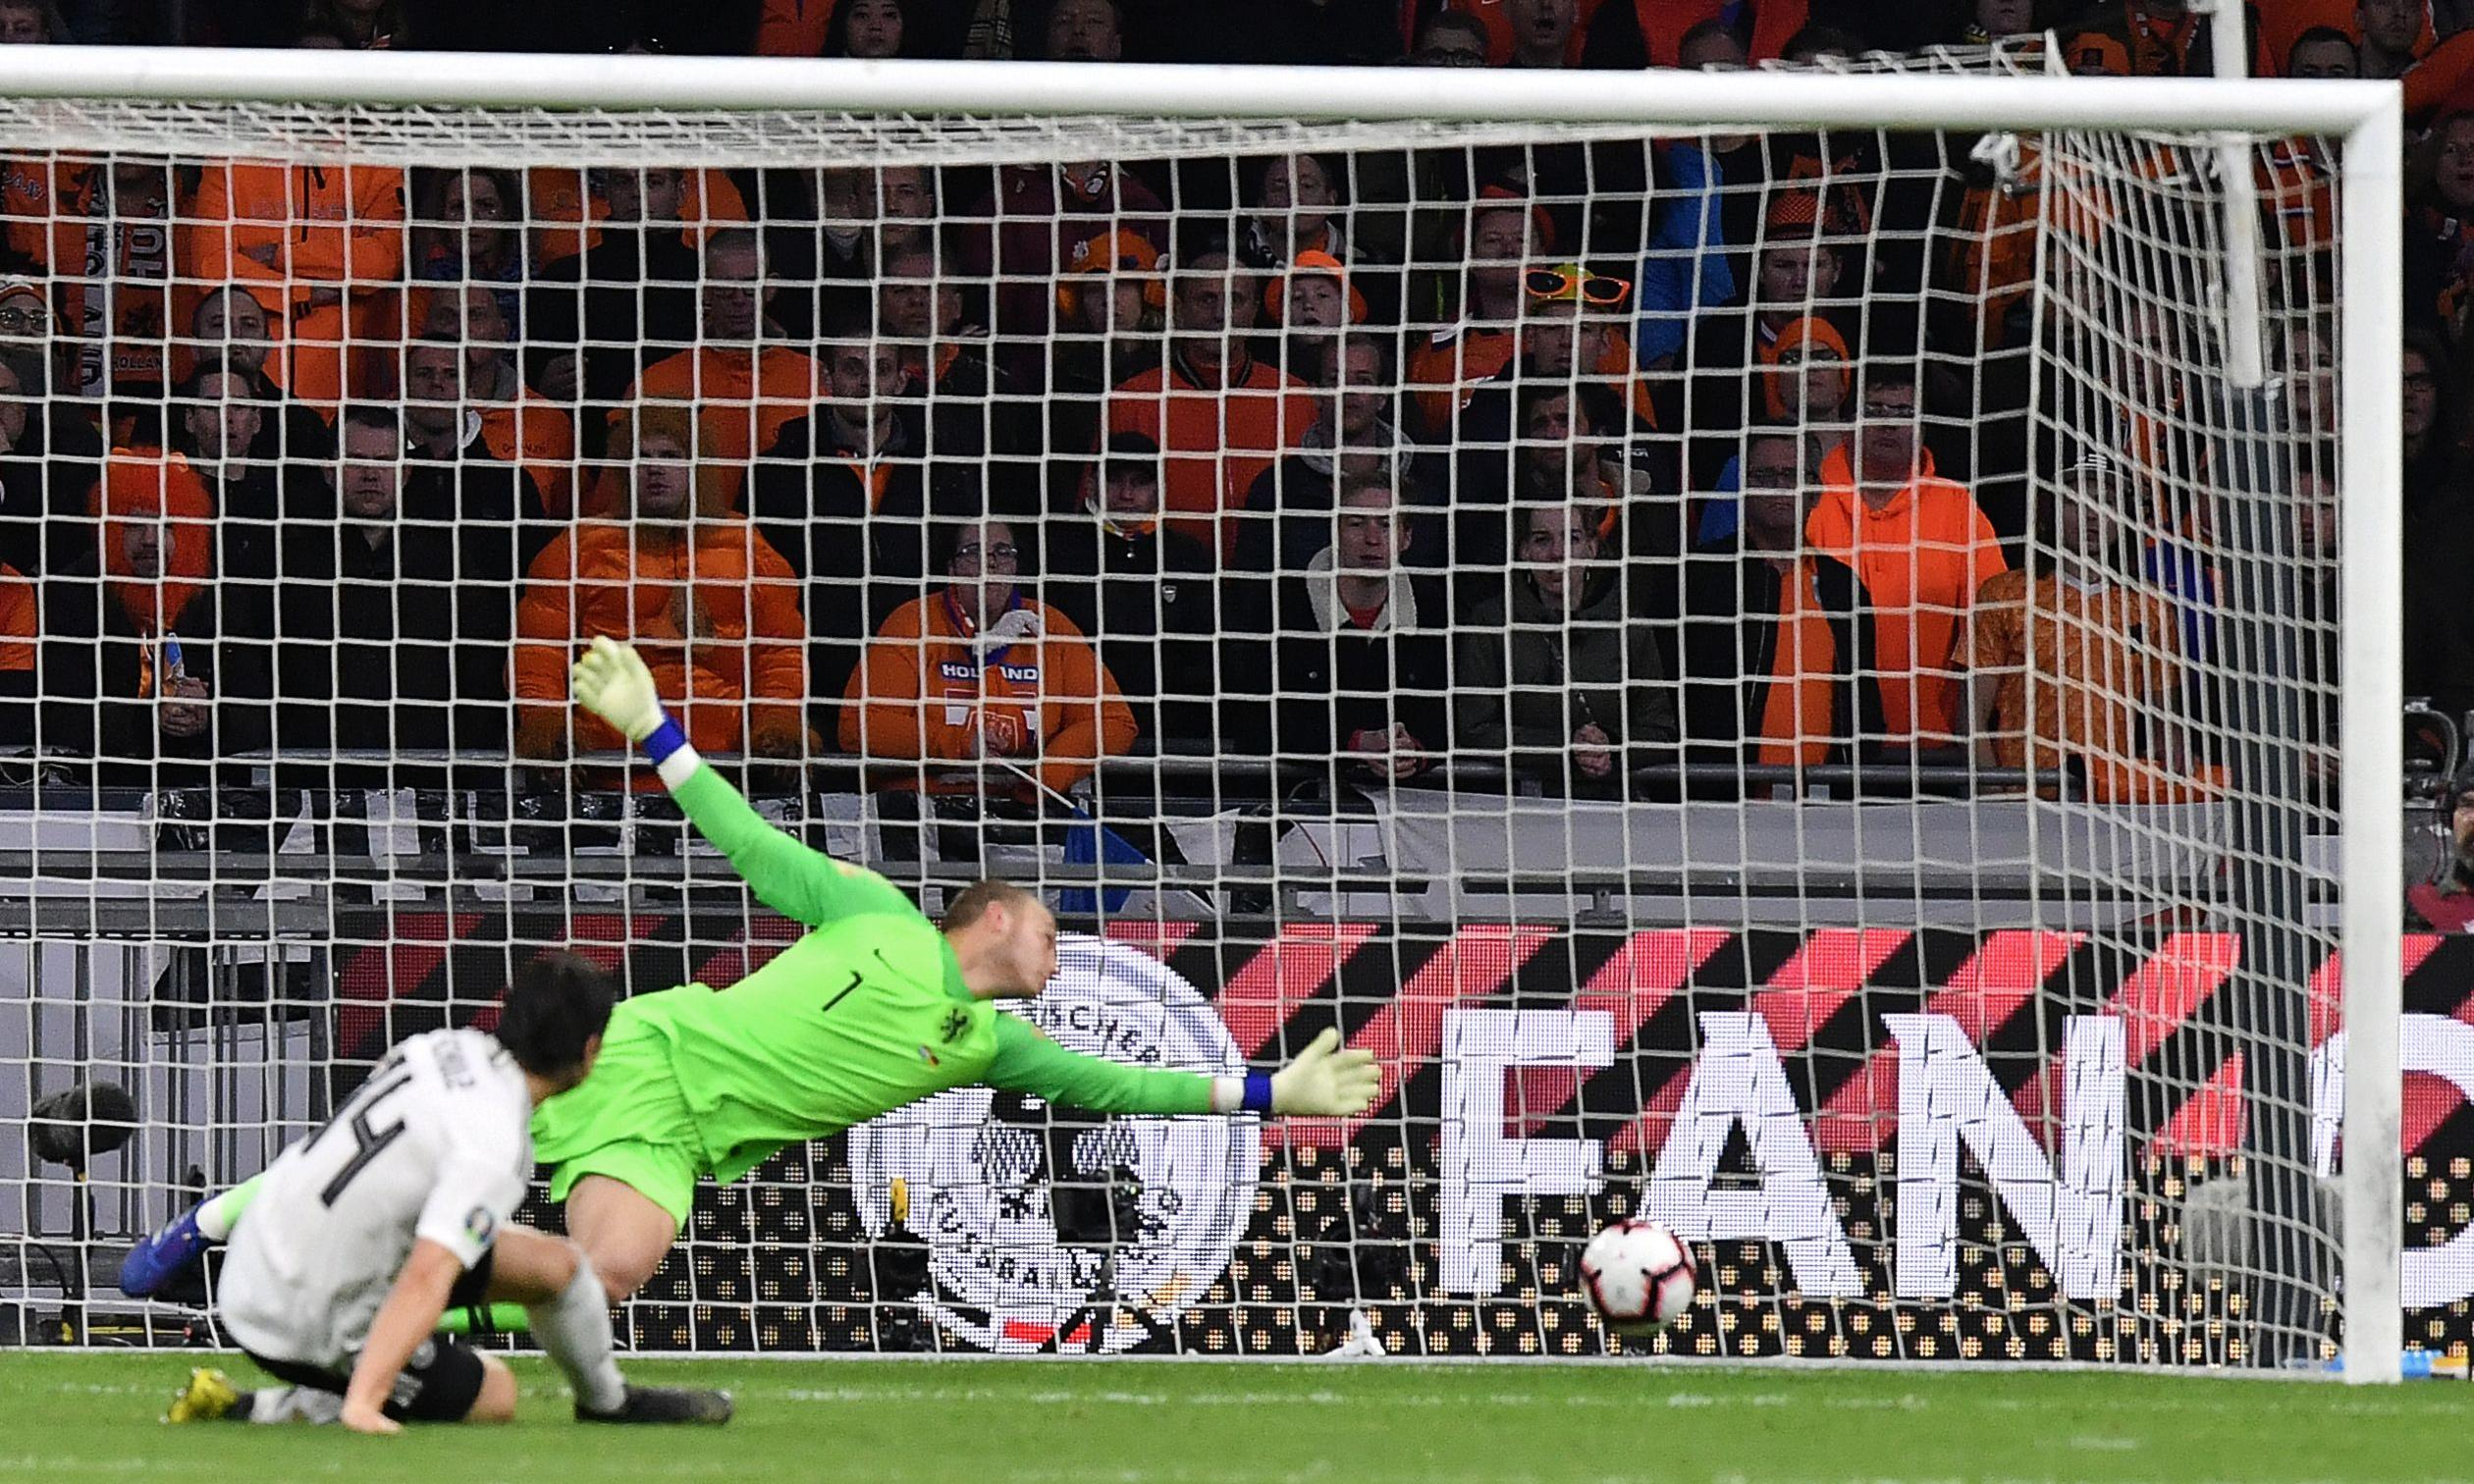 Germany come through against Netherlands with late Nico Schulz goal